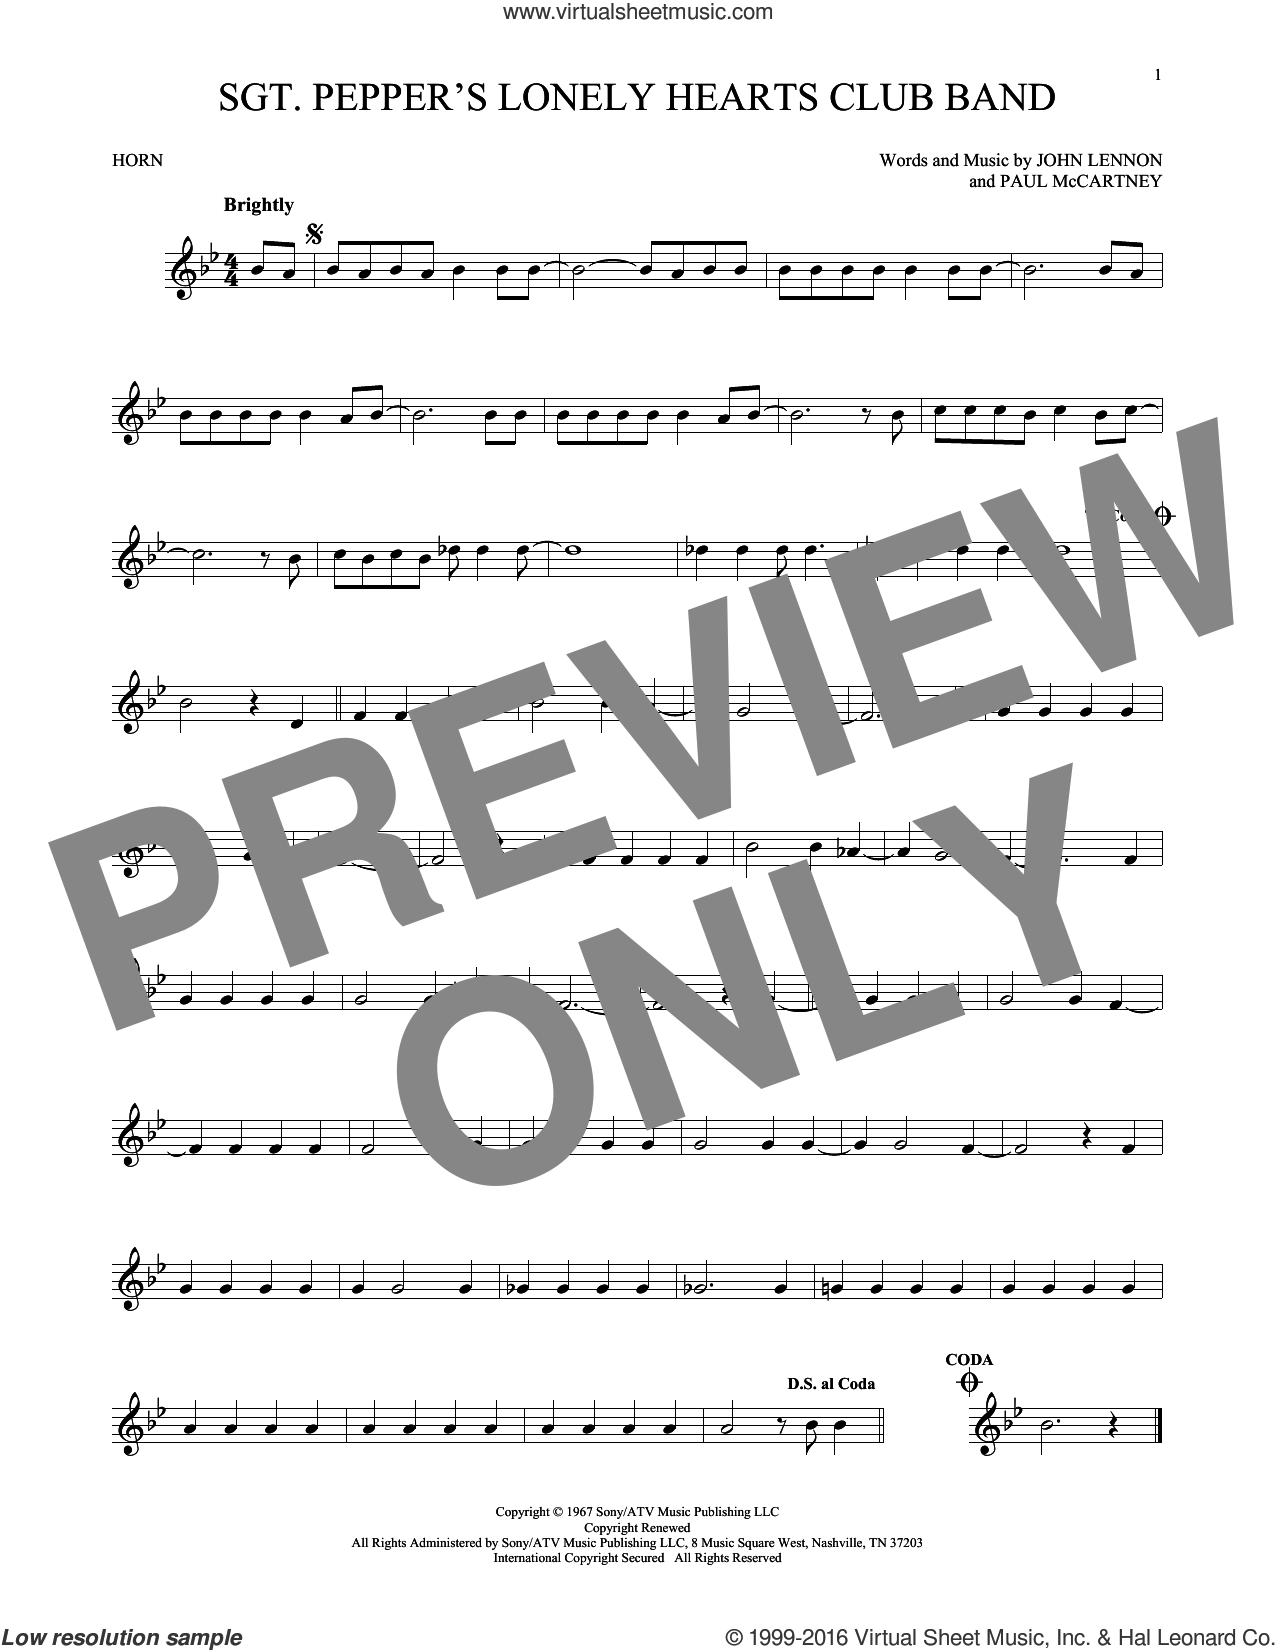 Sgt. Pepper's Lonely Hearts Club Band sheet music for horn solo by The Beatles, John Lennon and Paul McCartney, intermediate skill level